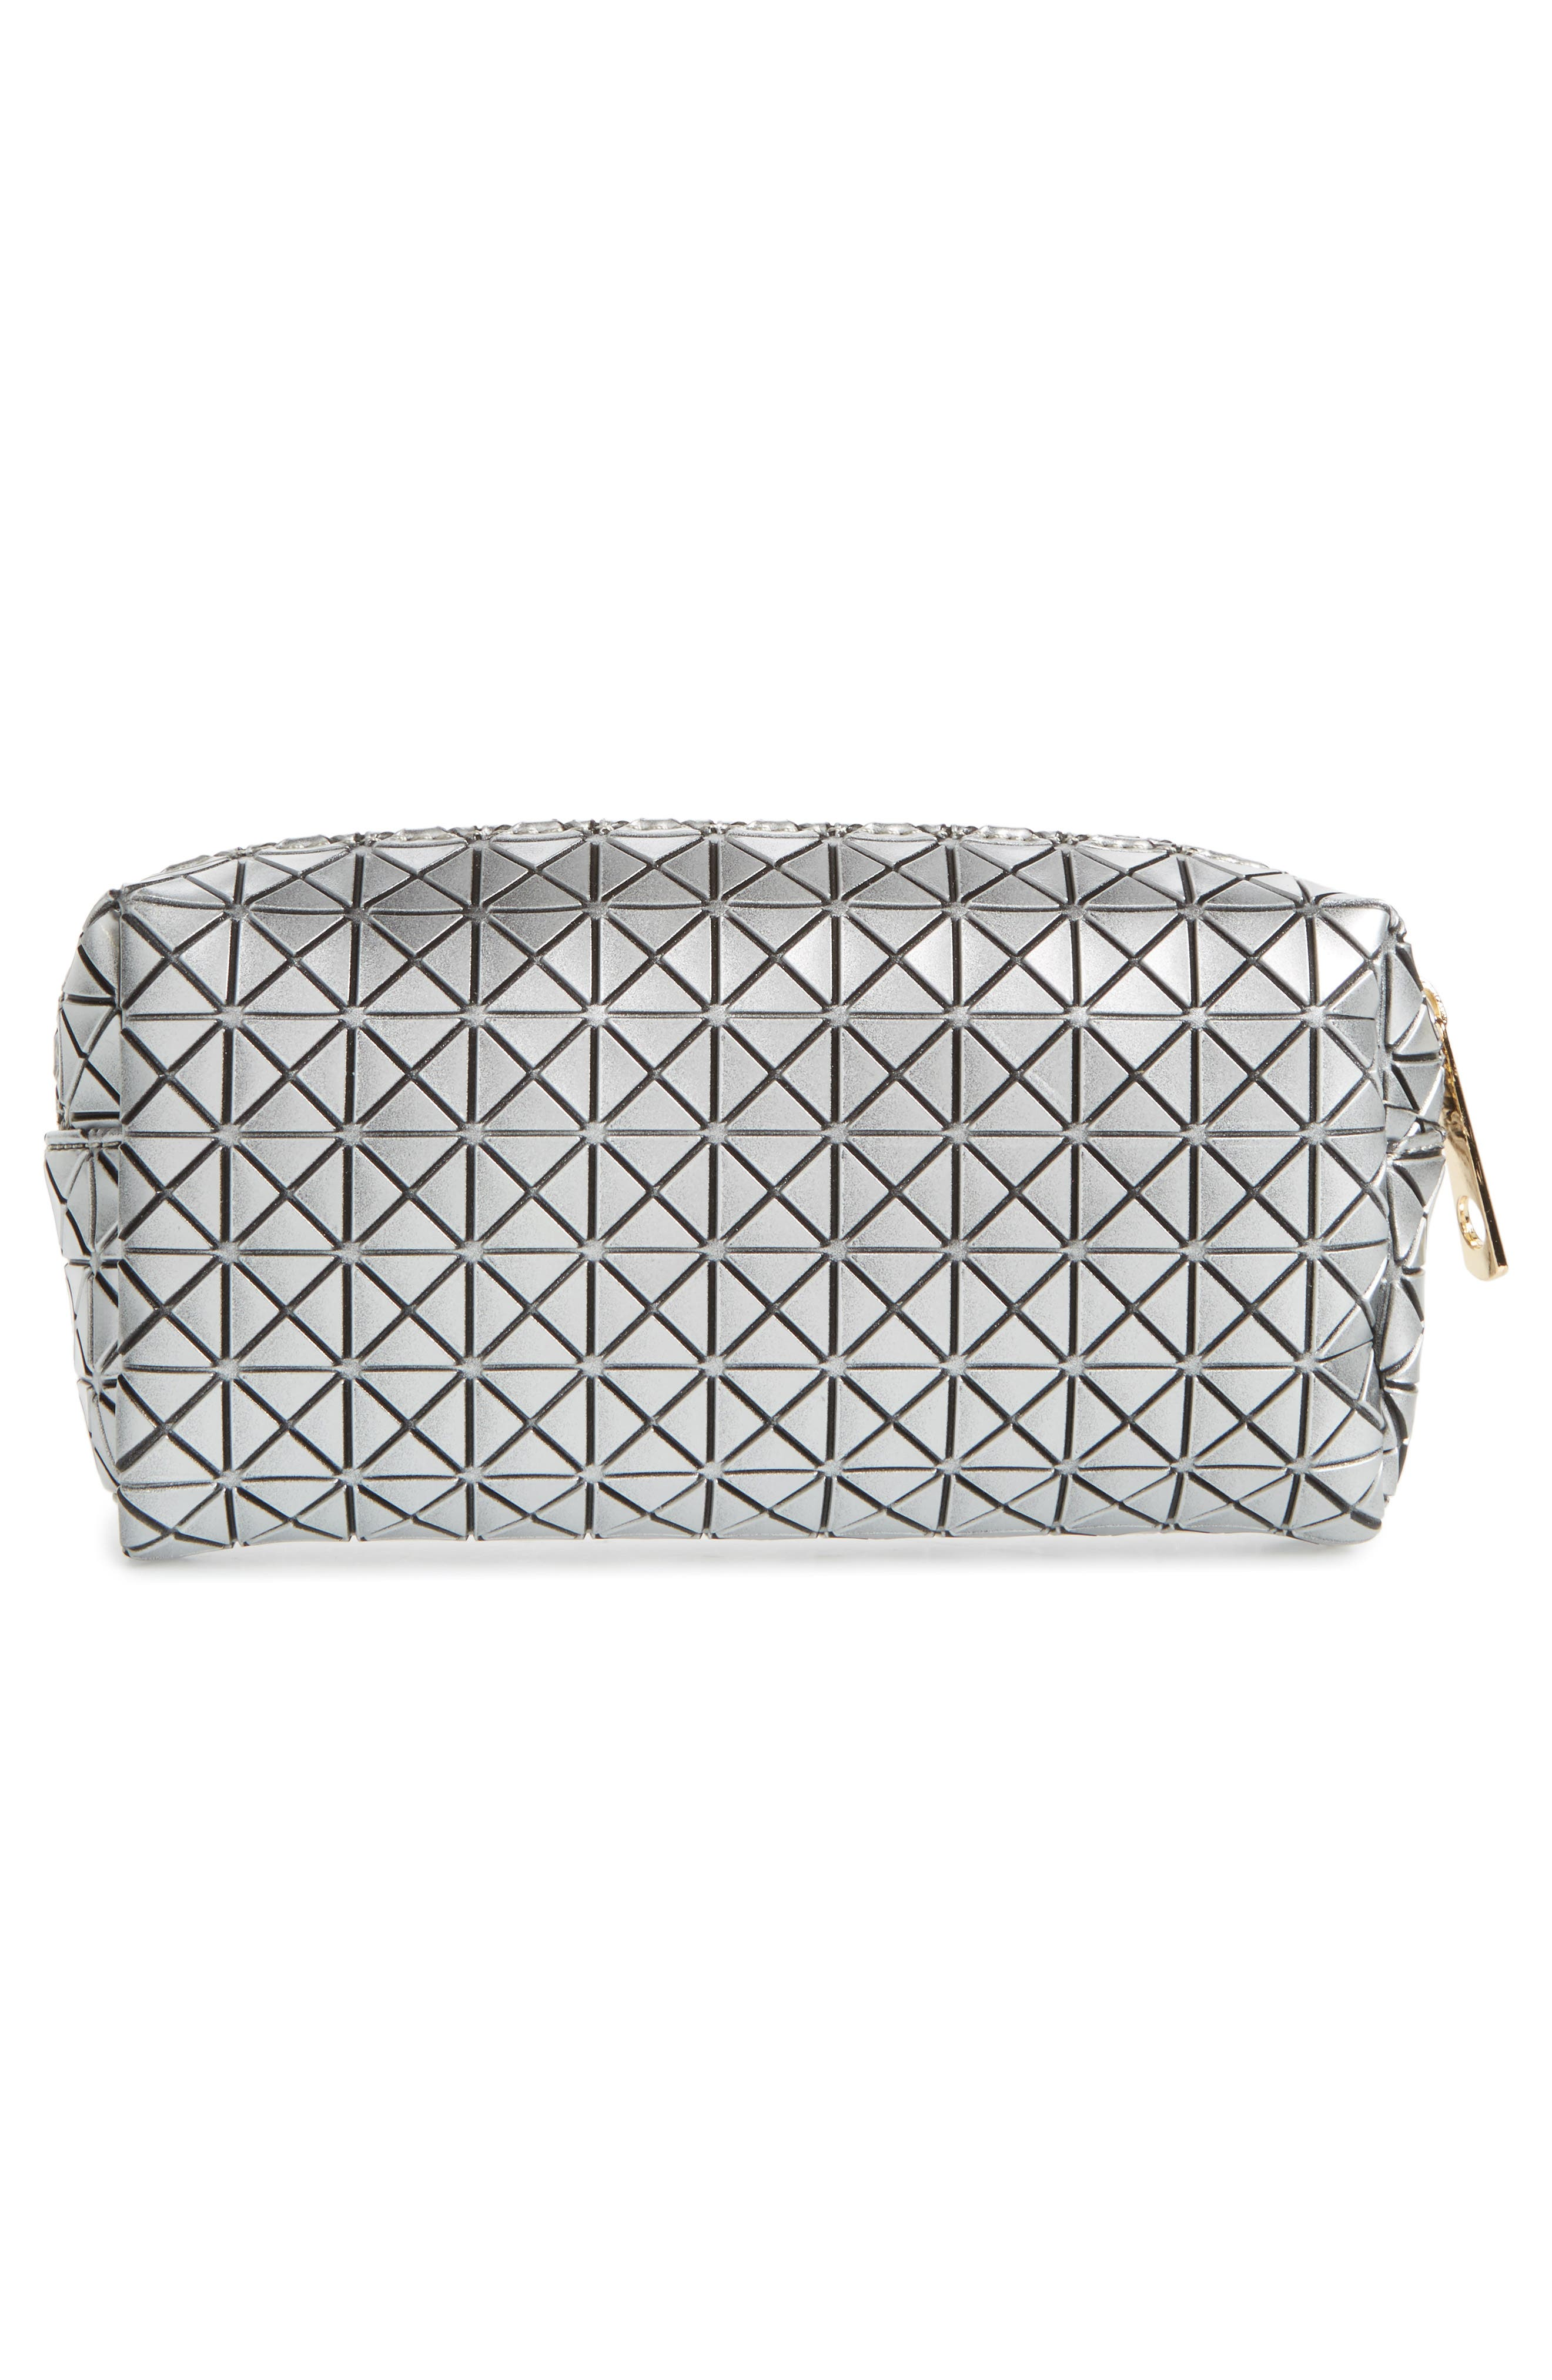 Diamond Embossed Cosmetics Bag,                             Alternate thumbnail 2, color,                             Silver